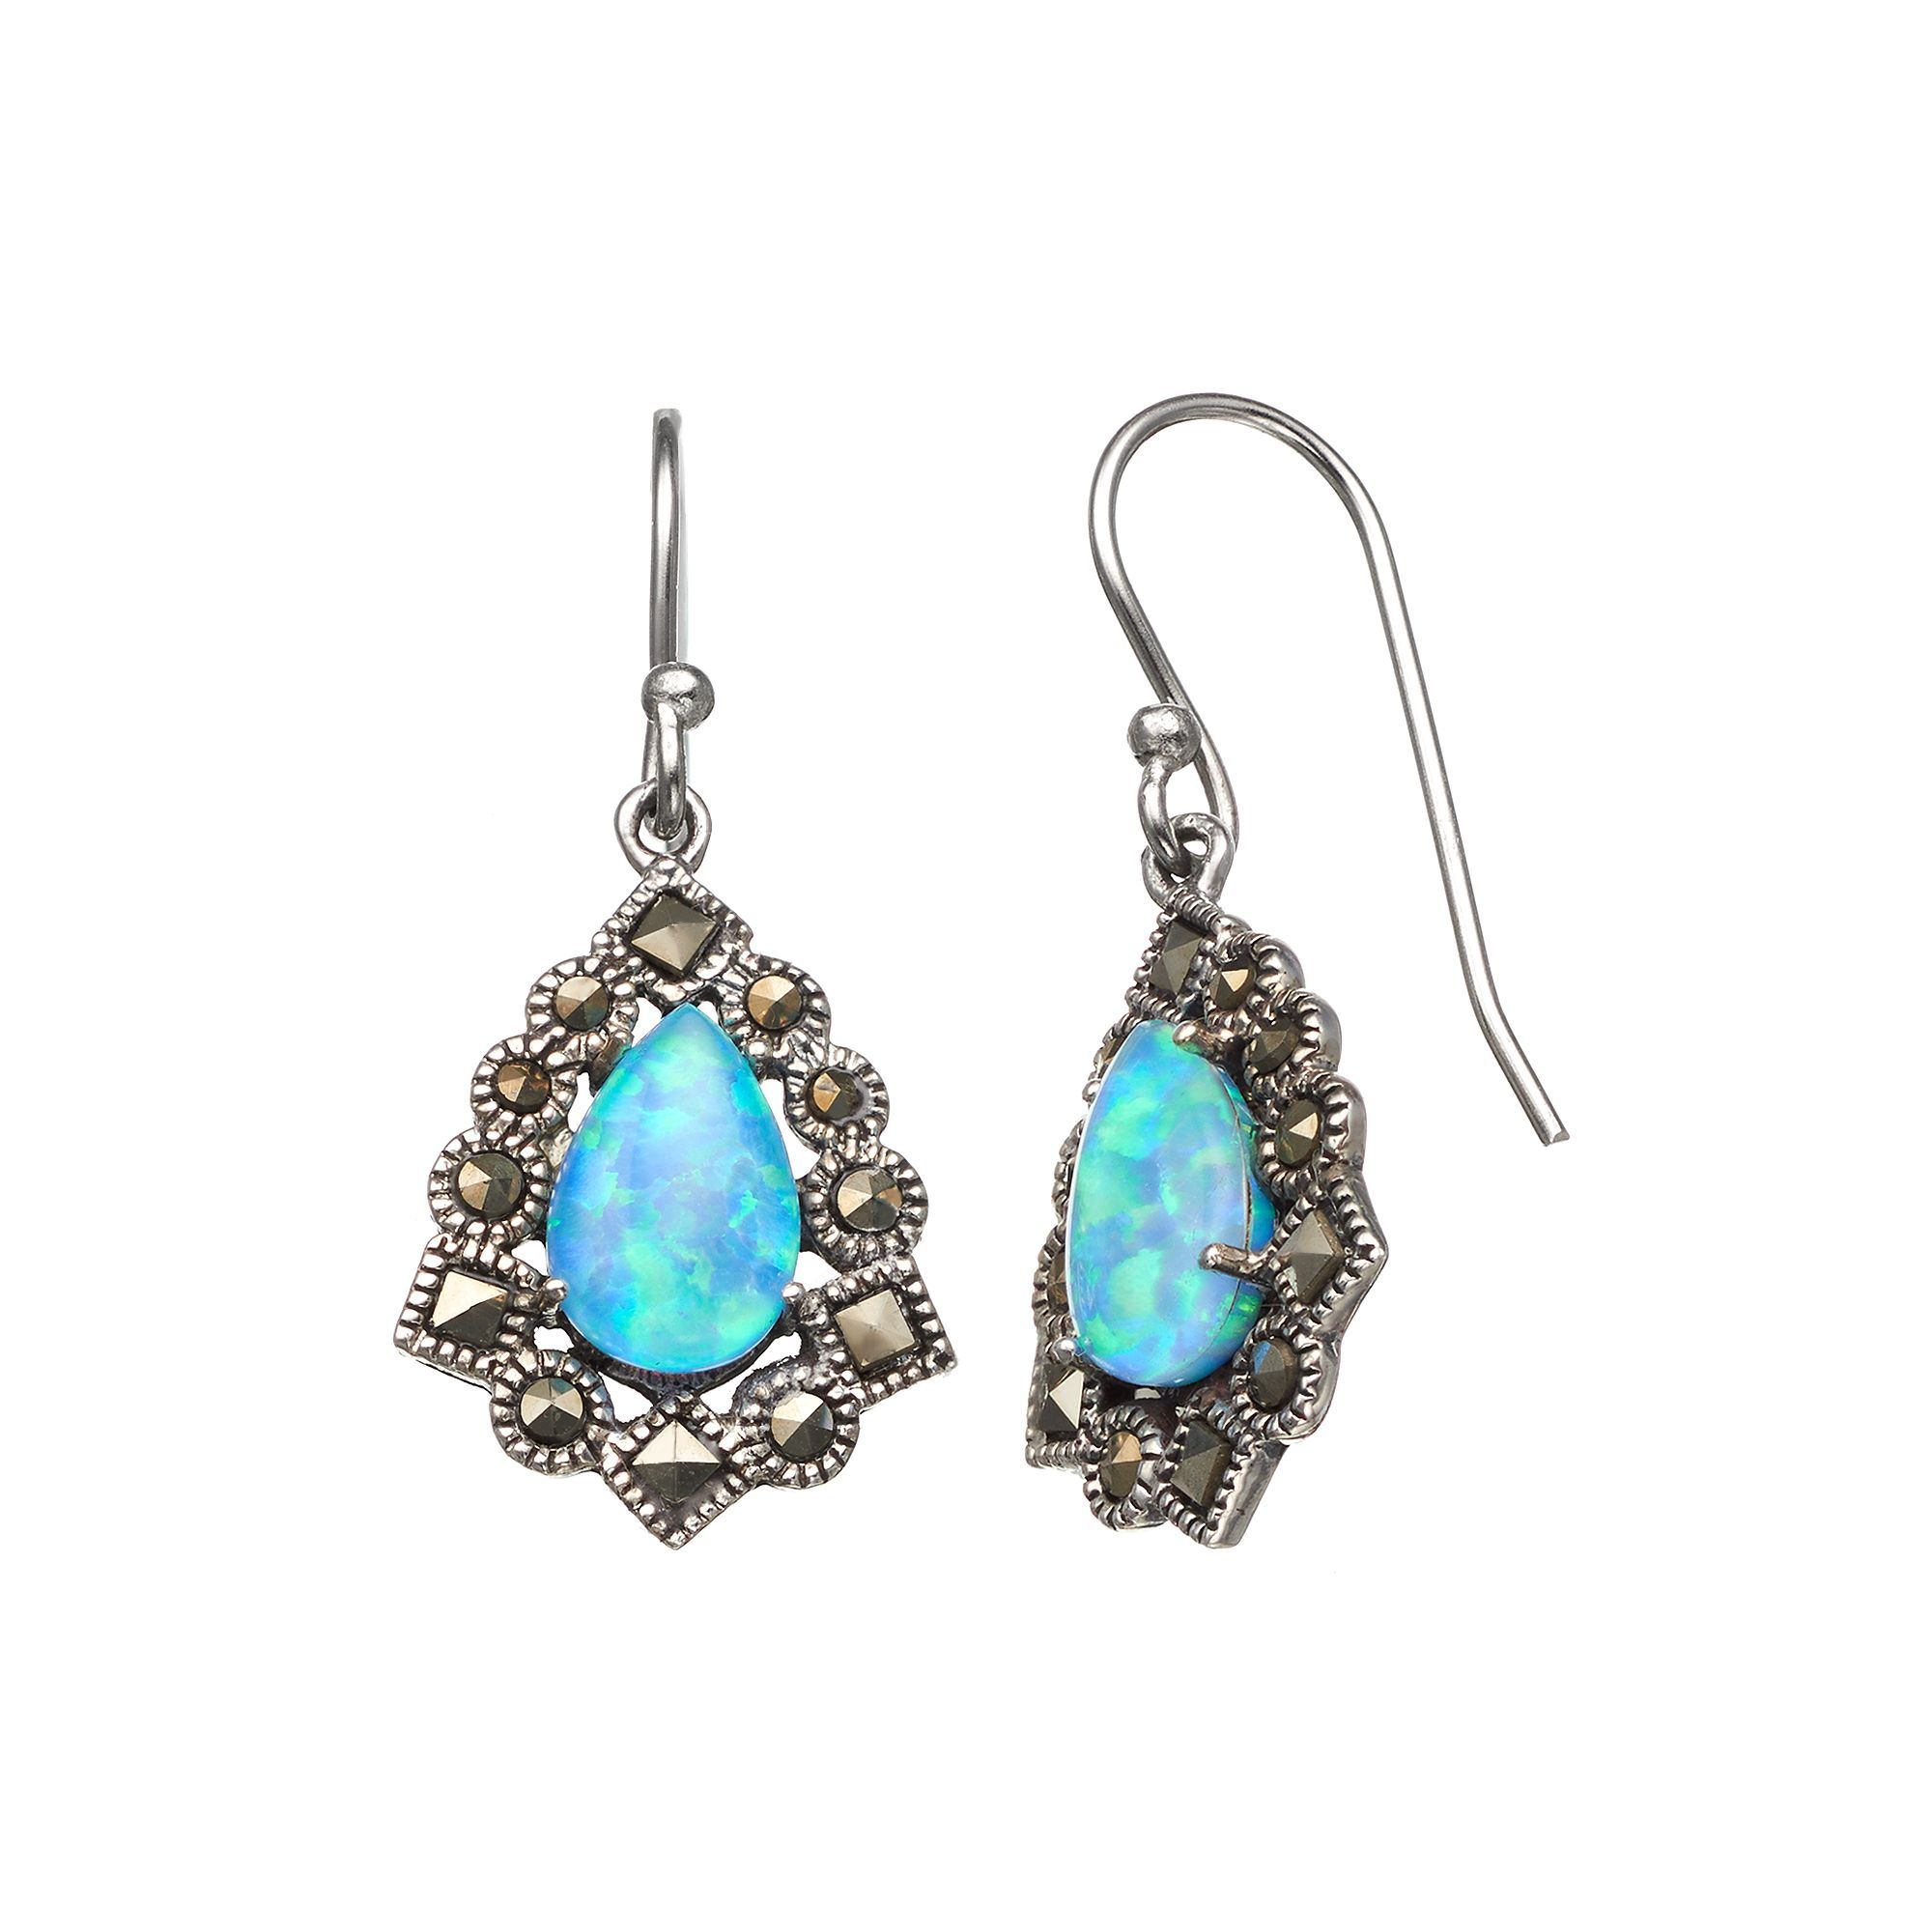 293501394 Tori Hill Simulated Blue Opal and Marcasite Sterling Silver Frame Teardrop  Earrings, Women's, White